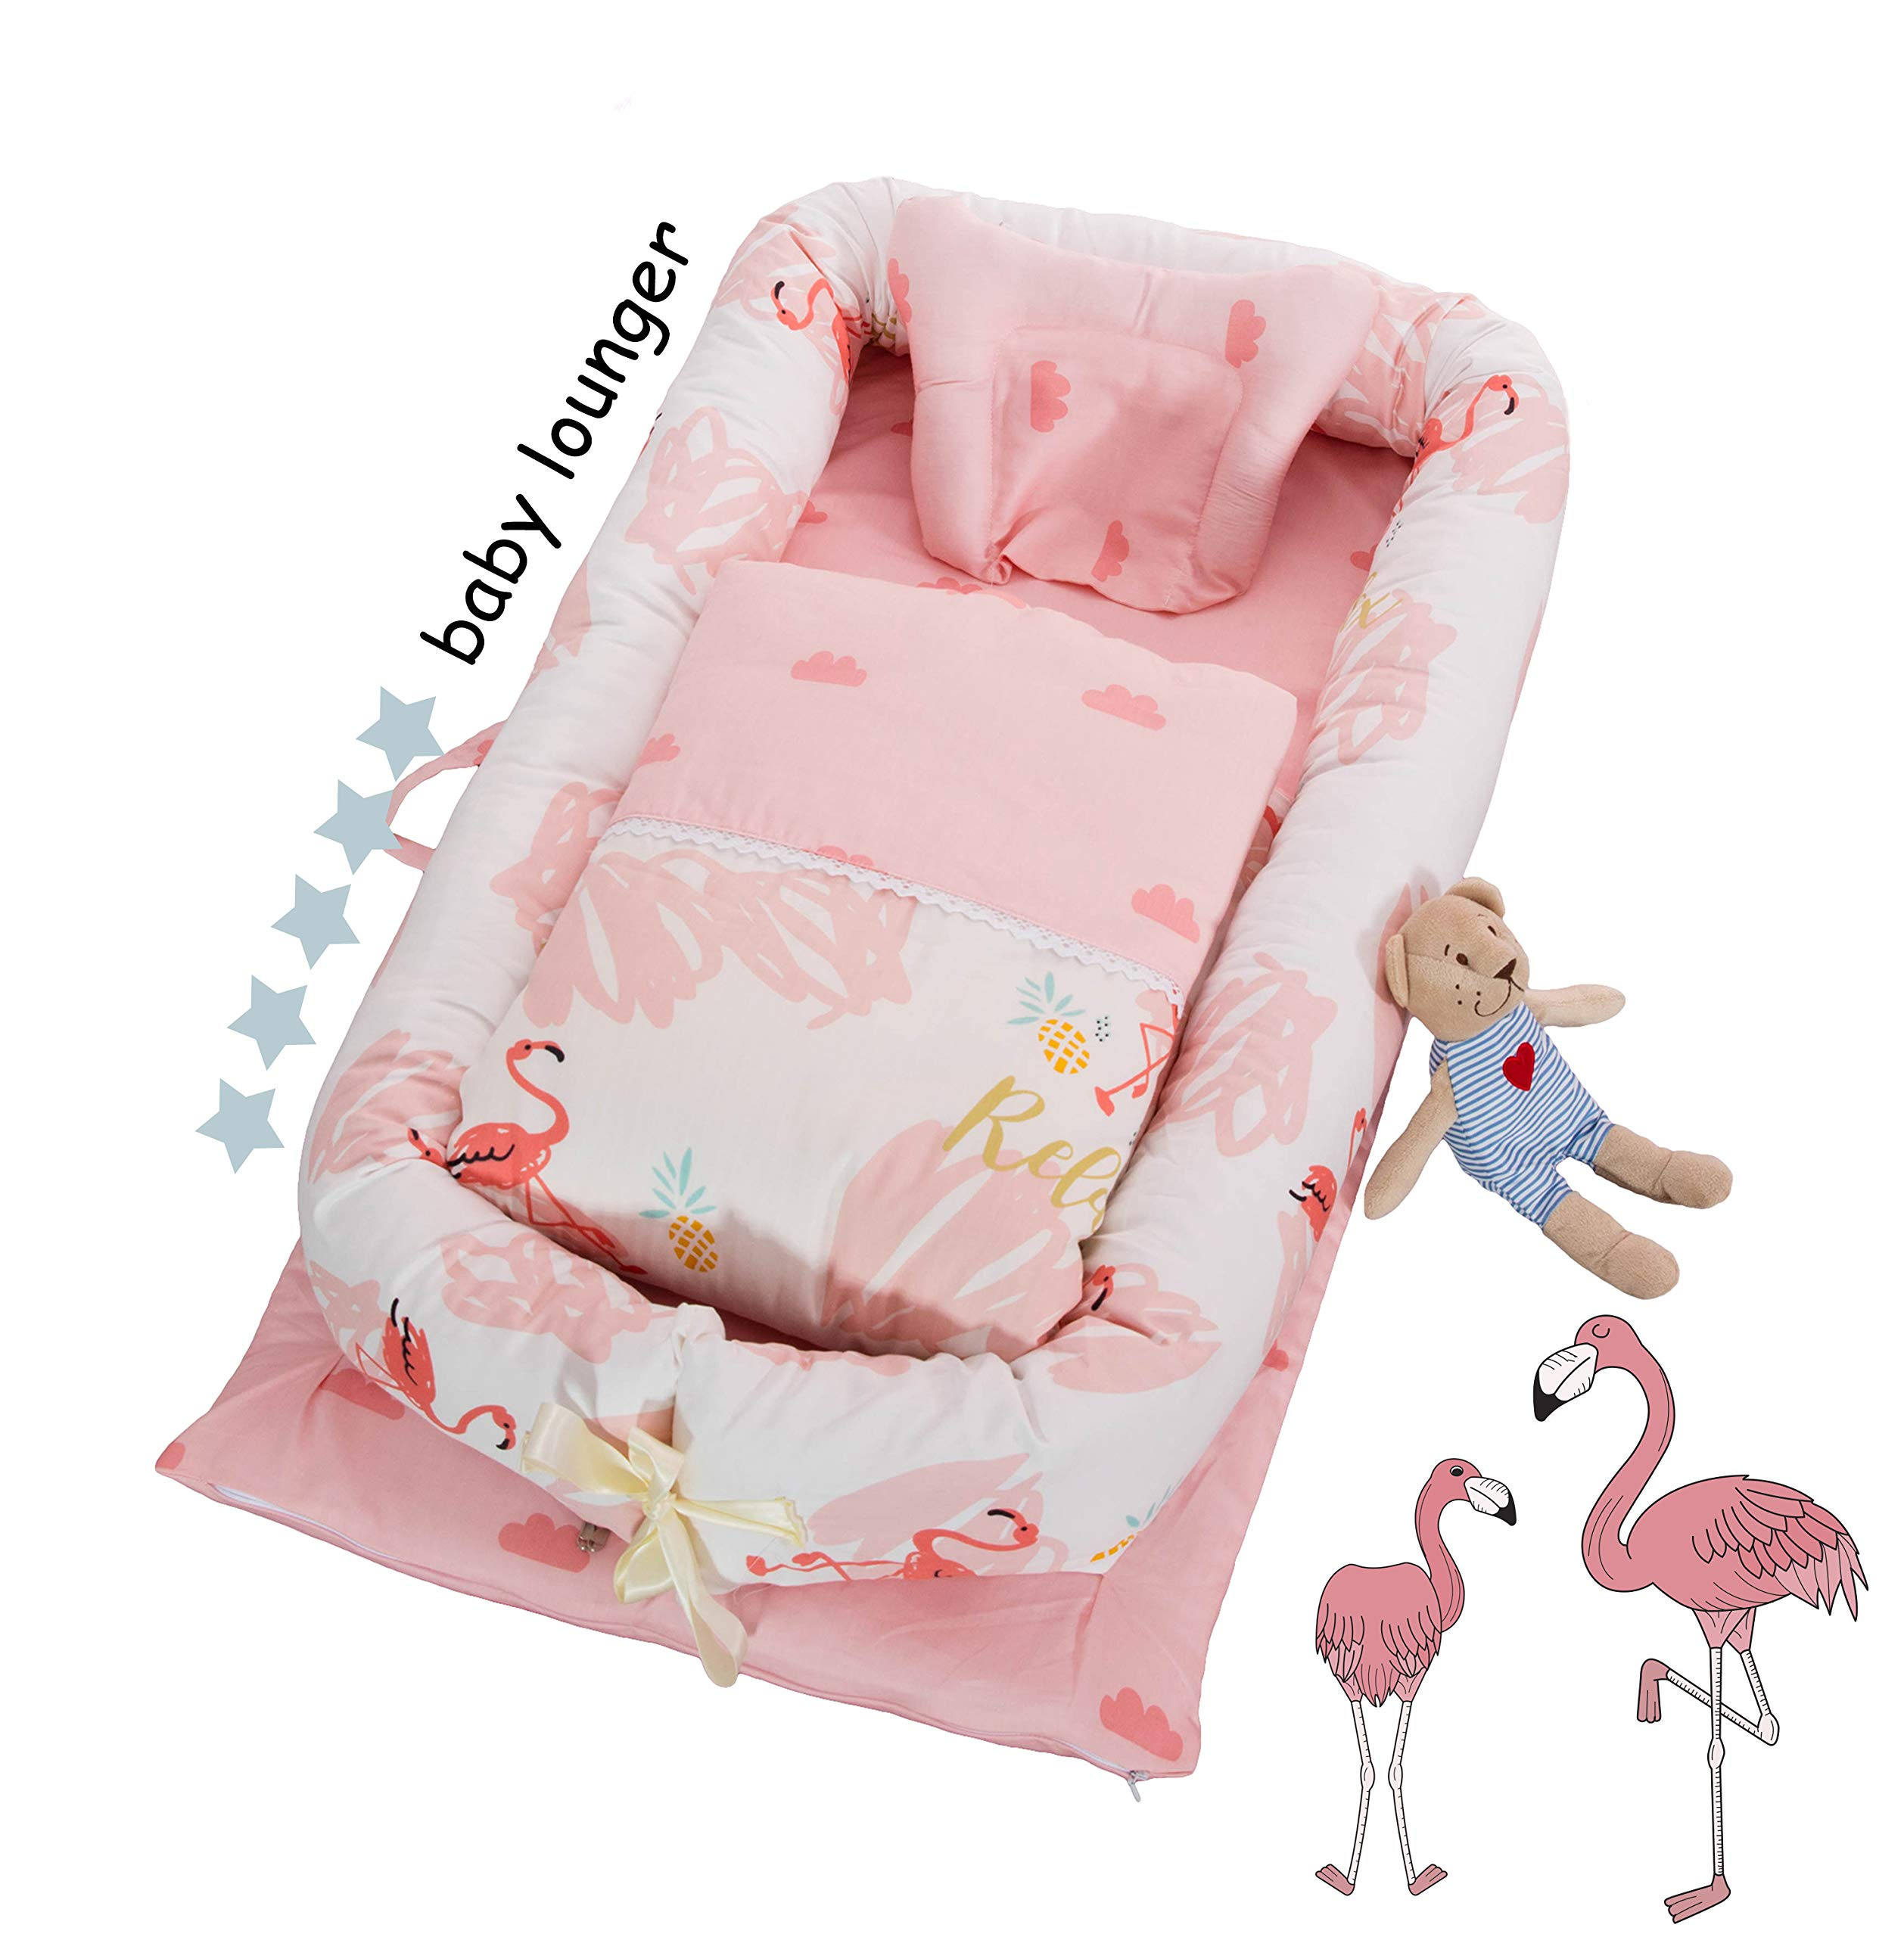 DOLDOA Baby Bassinet for Bed Portable Baby Lounger for Newborn,100% Cotton Newborn Portable Crib,Breathable and Hypoallergenic Sleep Nest Newborn Lounger Pillow for Bedroom/Travel (Flamingo) by DOLDOA